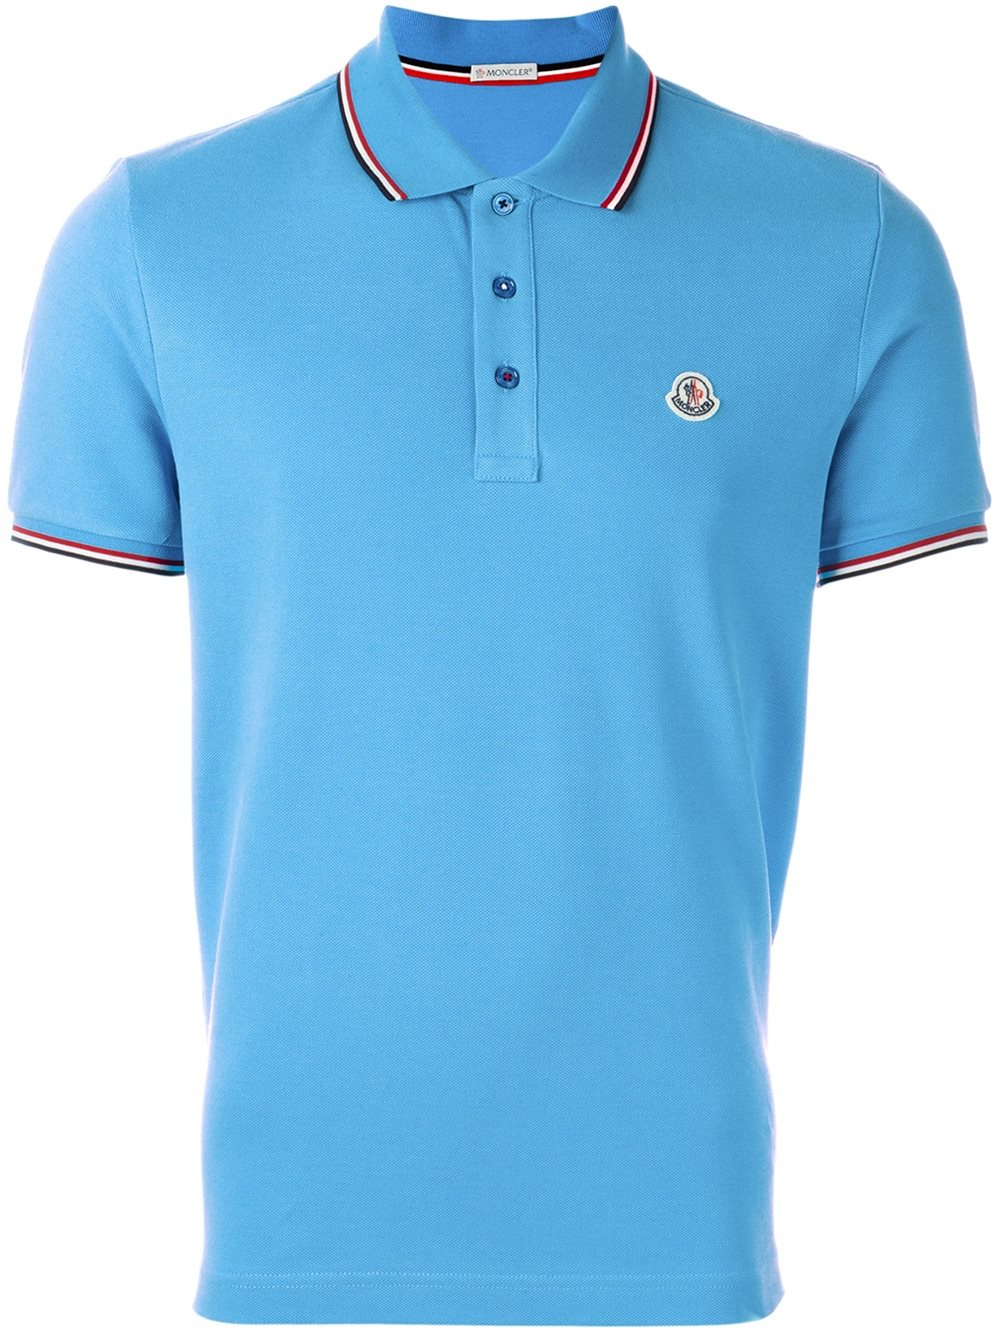 moncler short sleeve polo shirt in blue for men lyst. Black Bedroom Furniture Sets. Home Design Ideas